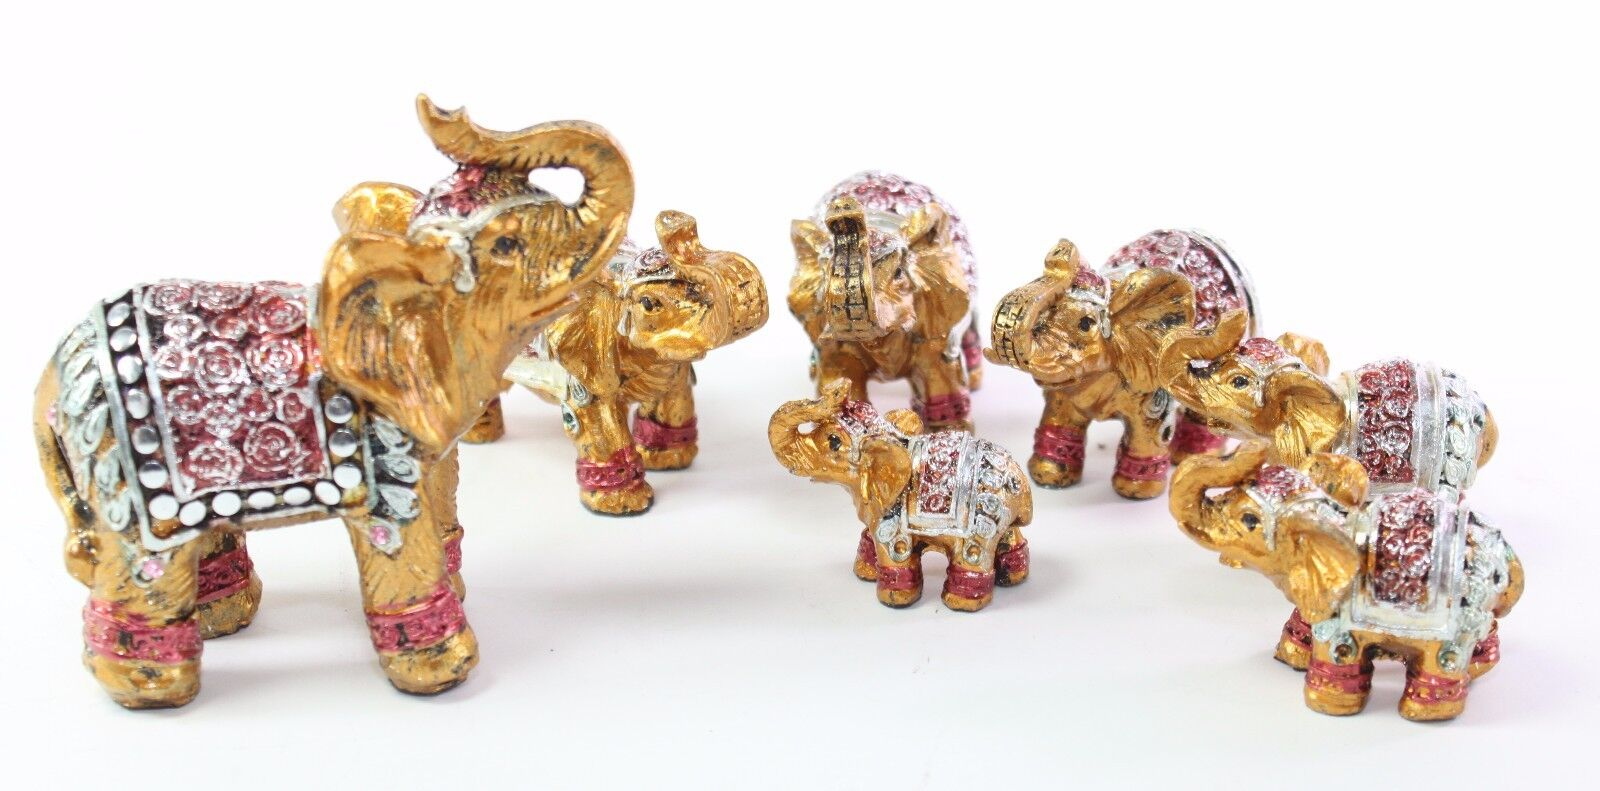 Feng Shui Set Of 7 Small Gold Elephant Family Statues Figurines Gift Home Decor Ebay